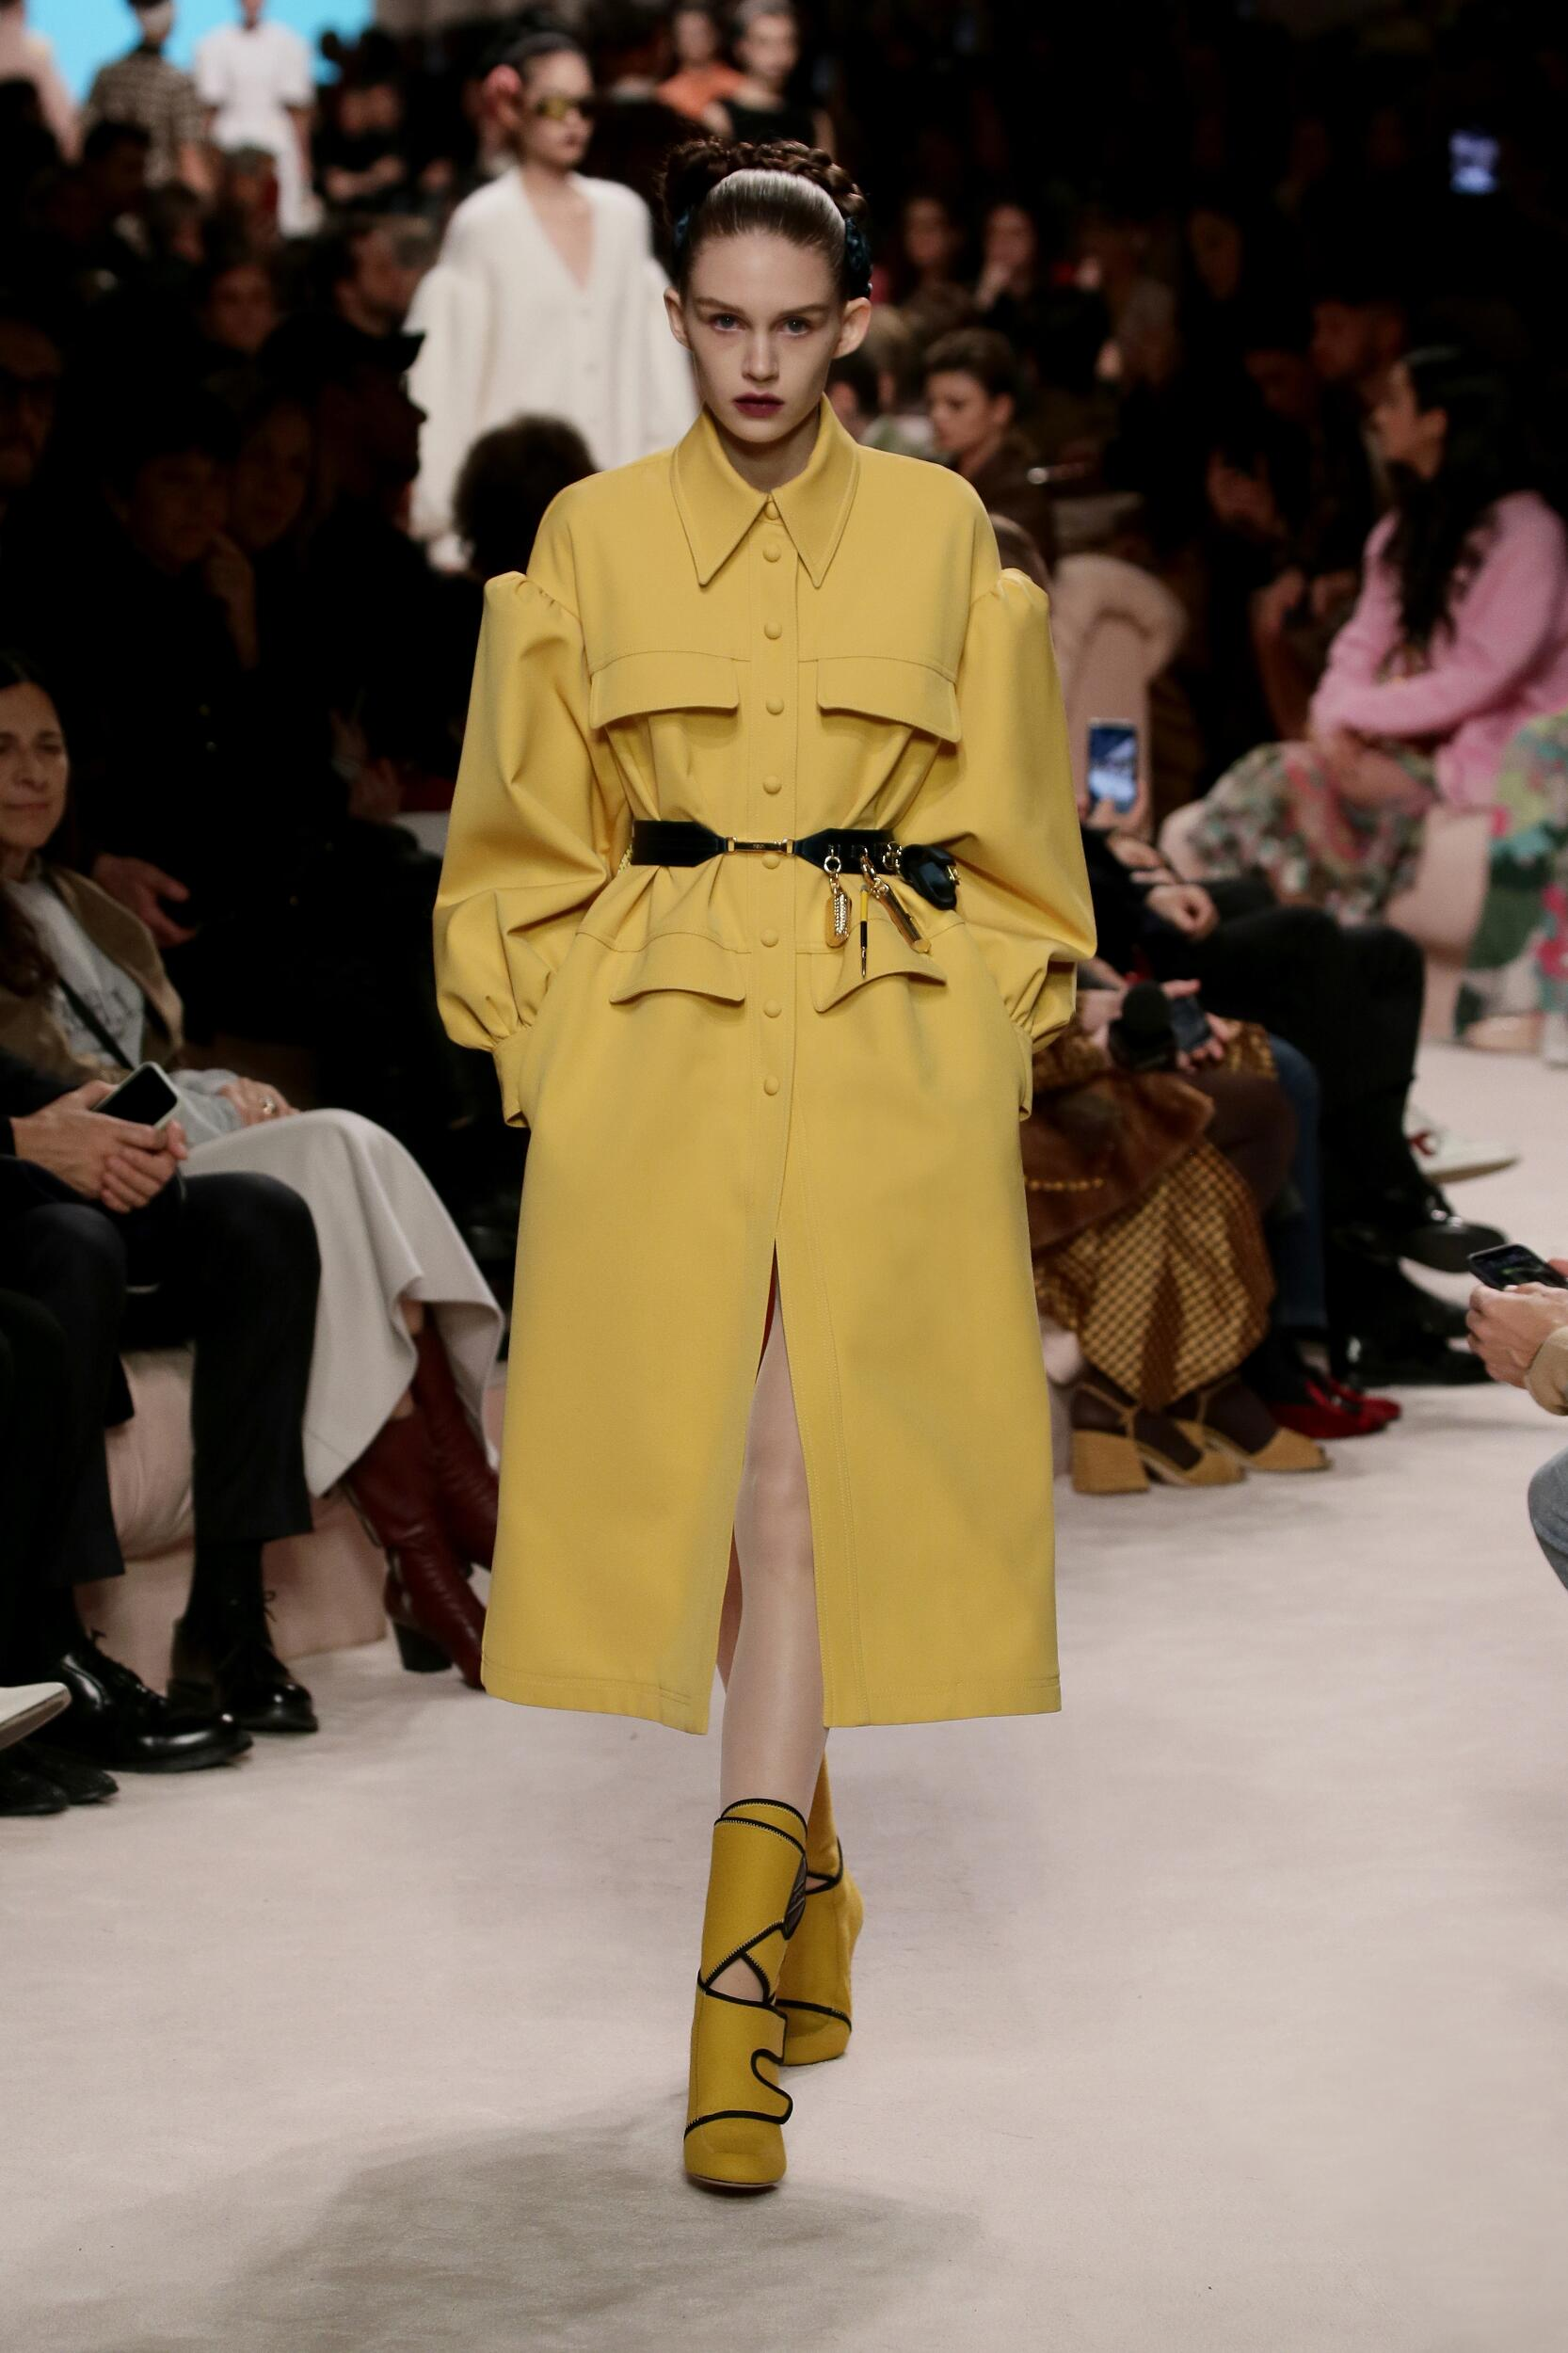 Fendi Winter 2020 Catwalk